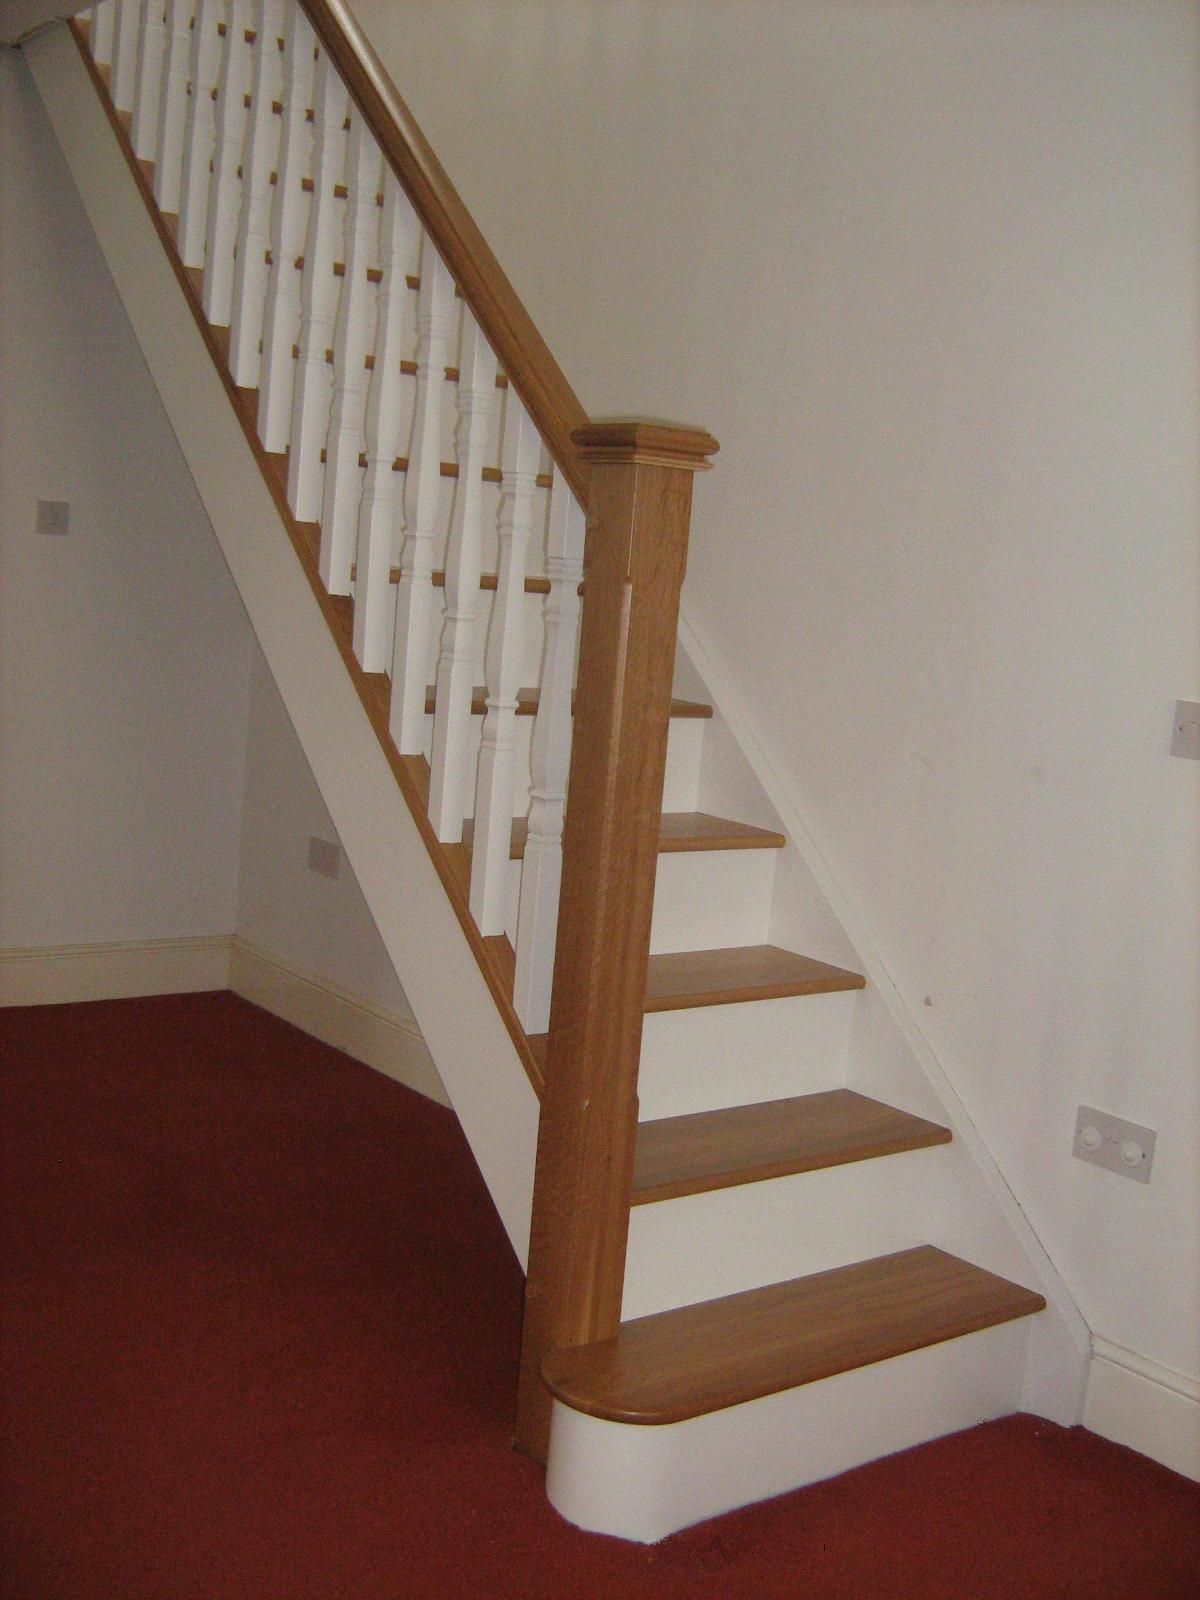 Pin By Tanya Ellul On Bespoke Wooden Staircases Staircase Design | White Oak Stair Risers | Spindles | Paint | Stair Railing | Stairs Treads | Carpet